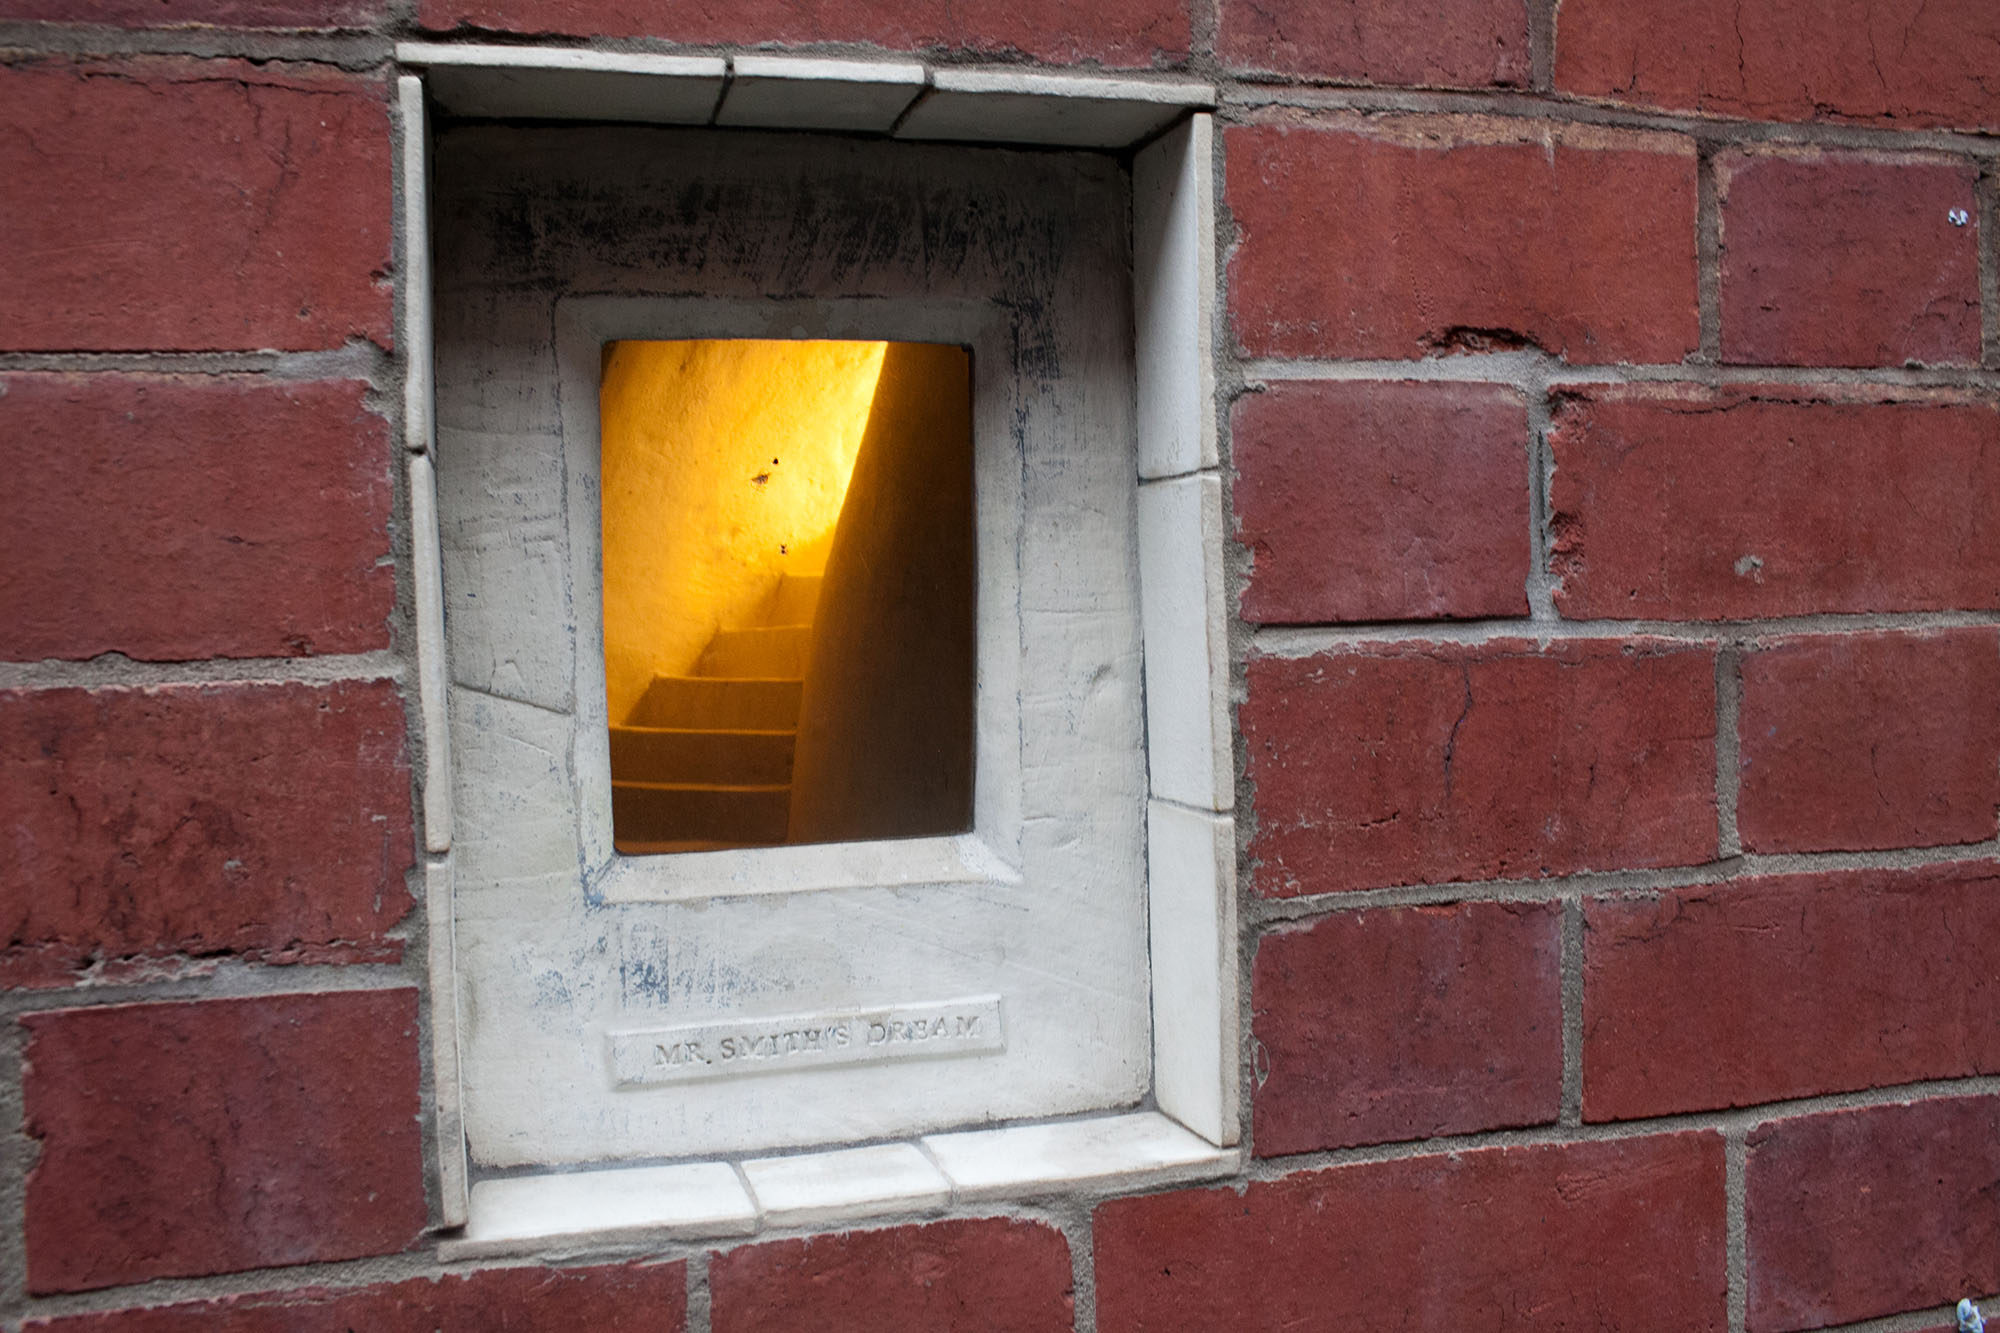 Mr Smith's Dream - tiny window and staircase in Manchester, England.